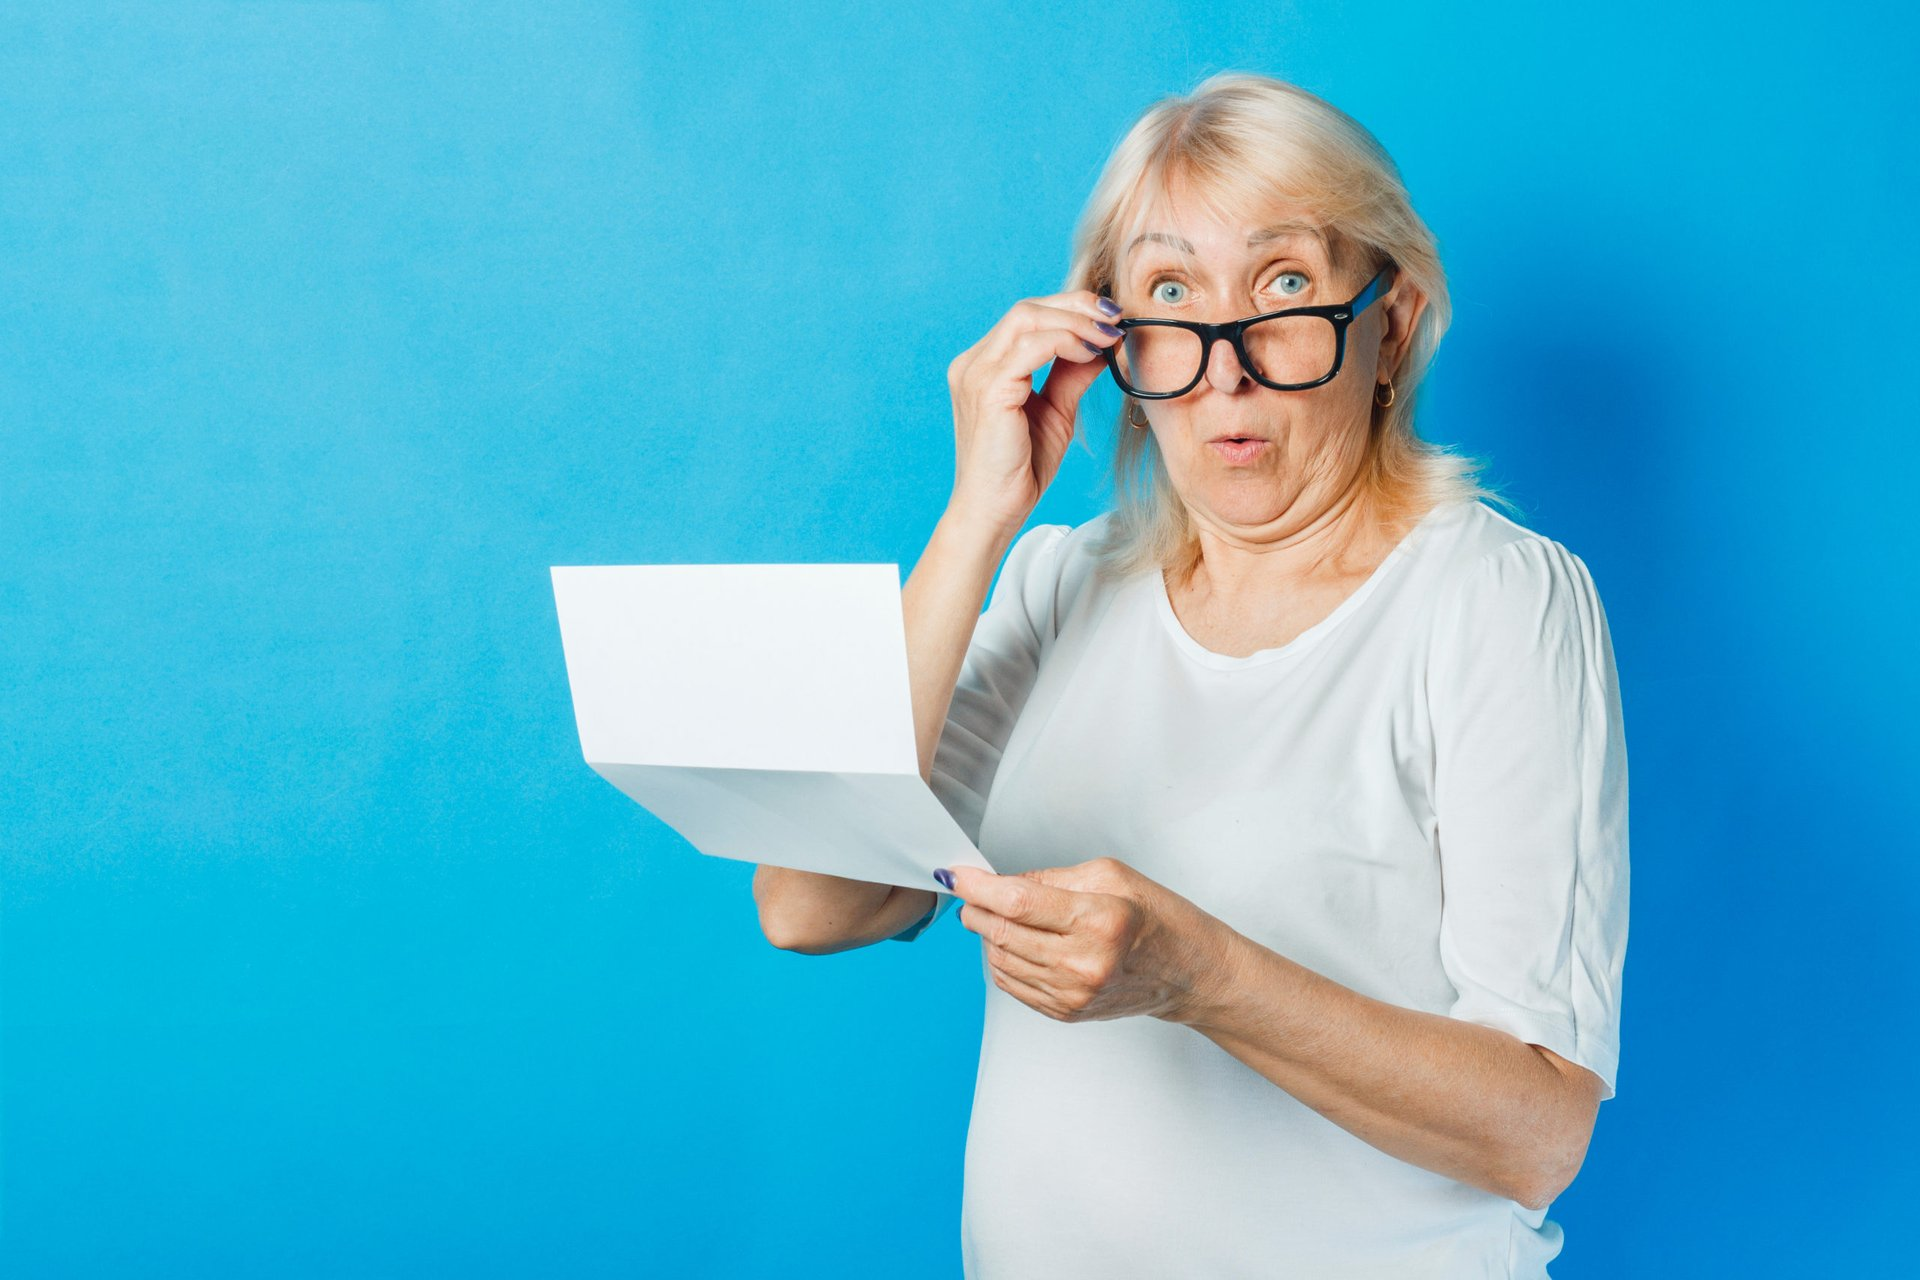 An older woman lowers her eyeglasses in surprise while holding a document